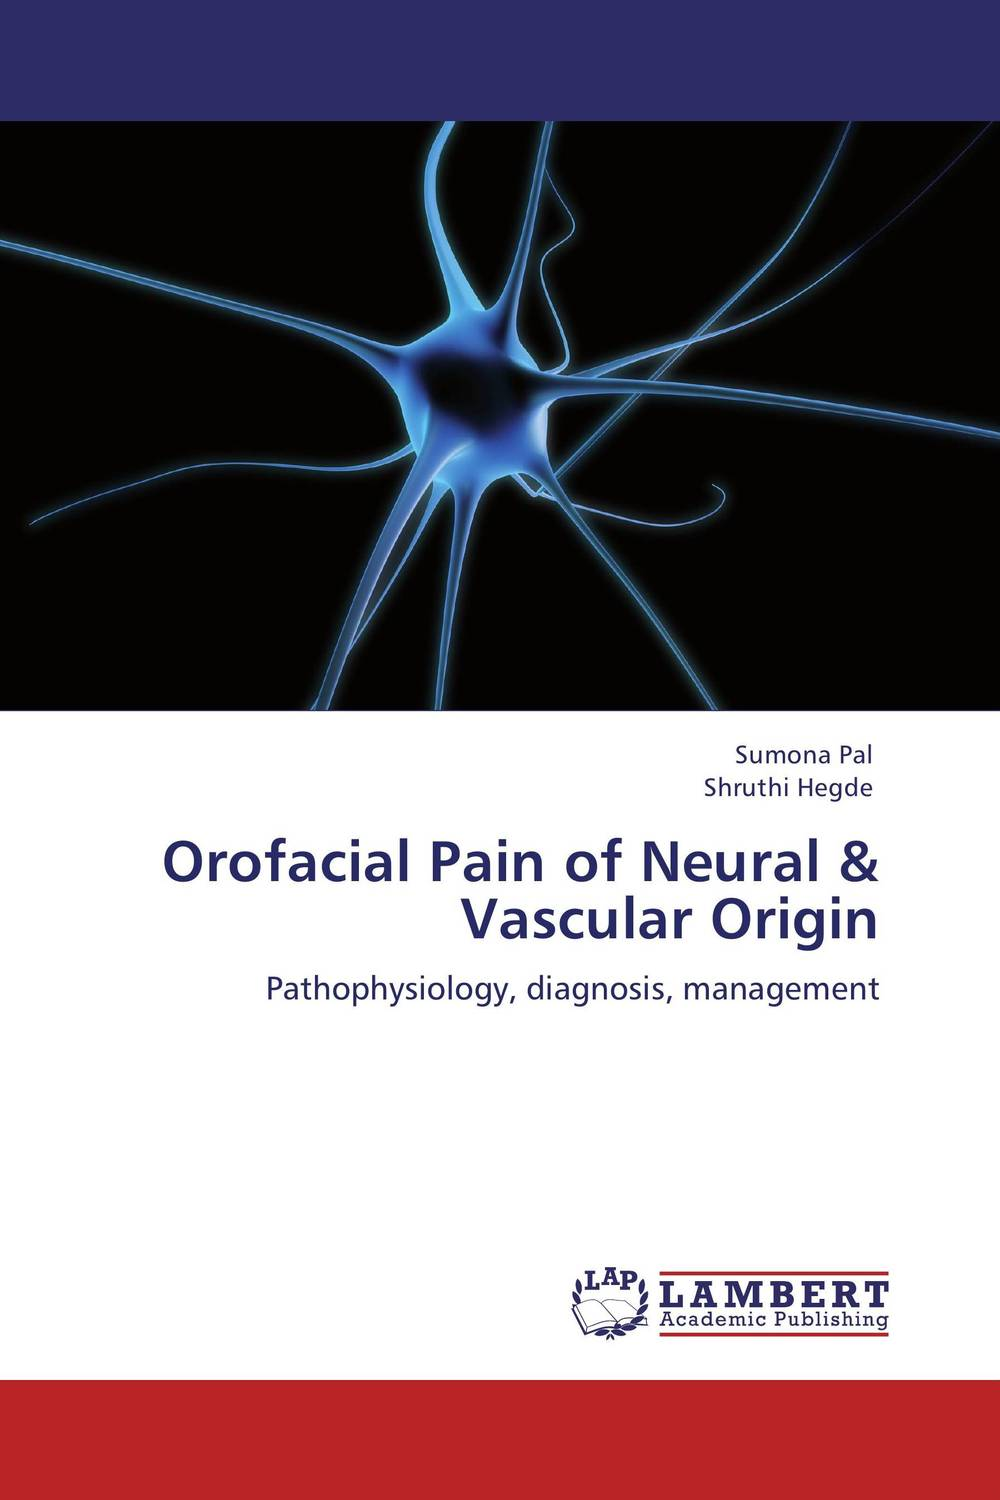 Orofacial Pain of Neural & Vascular Origin neuralgias of the orofacial region